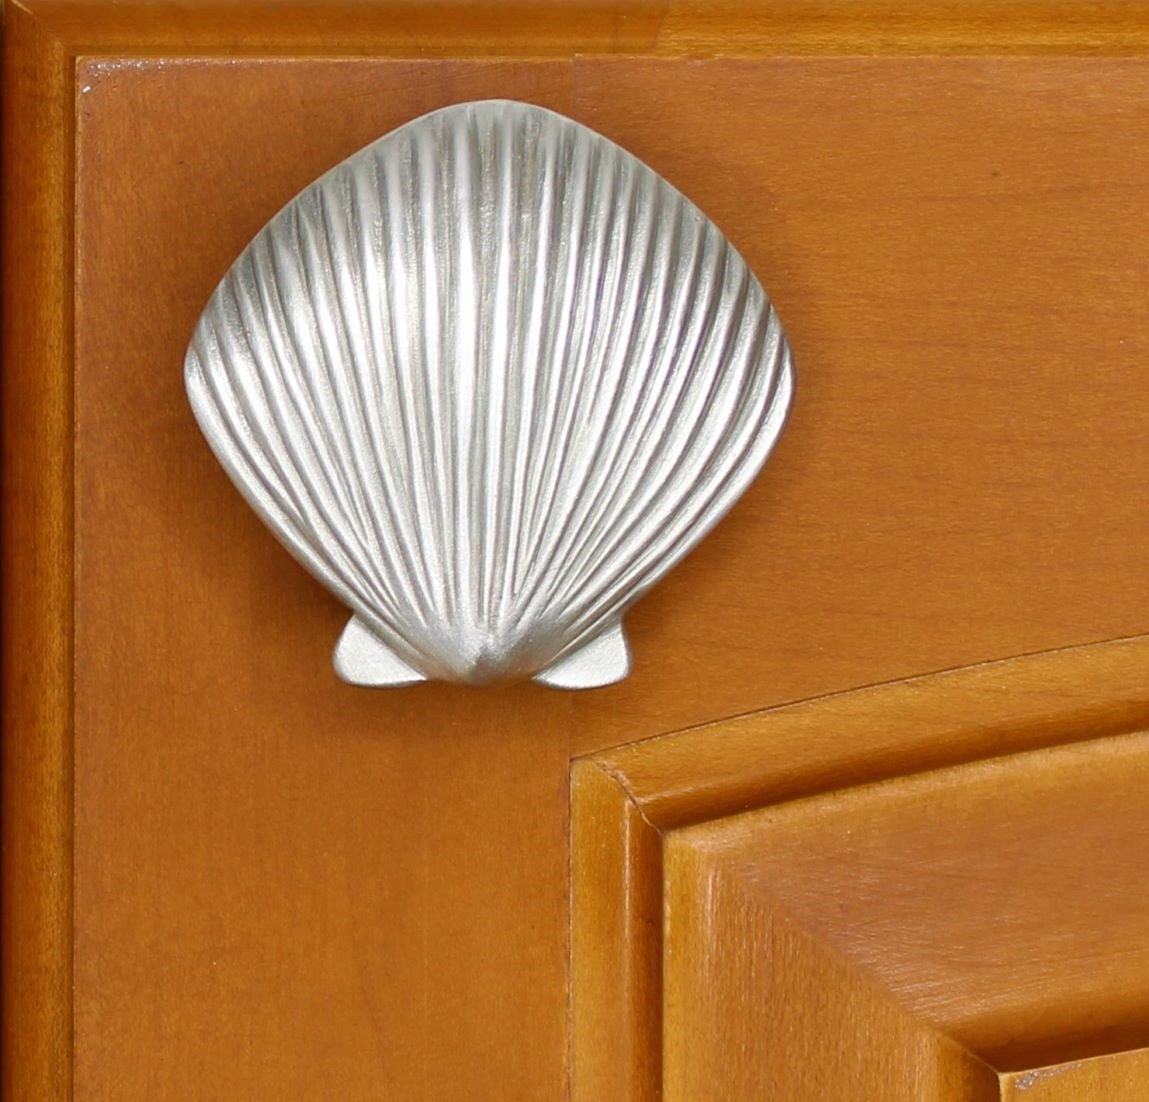 Scallop Seashell Cabinet Knobs For Coastal Kitchen Or Bathroom Decor Sea Life Cabinet Knobs By Peter Costello